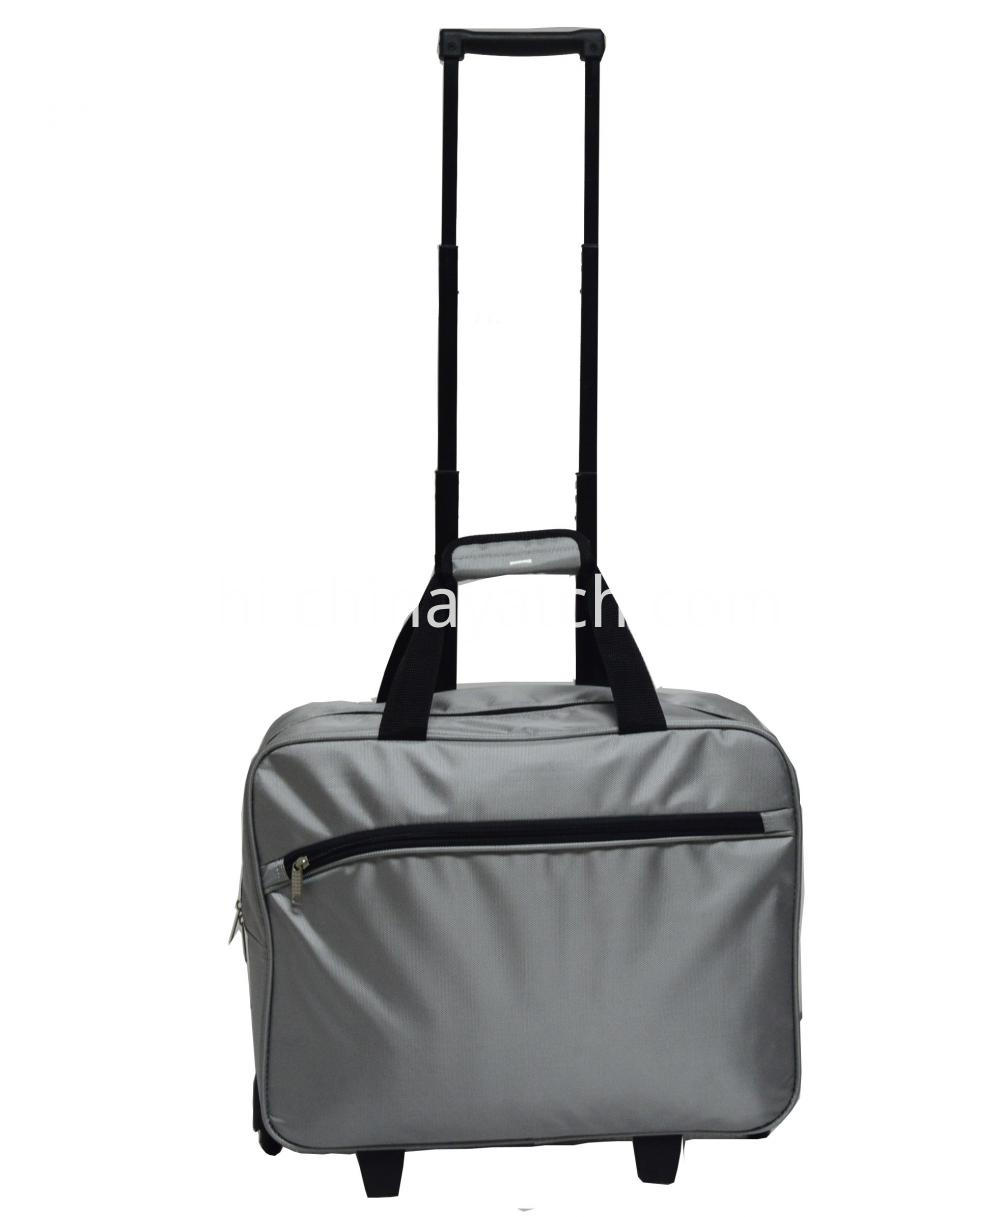 2 Wheels Laptop Trolley Case